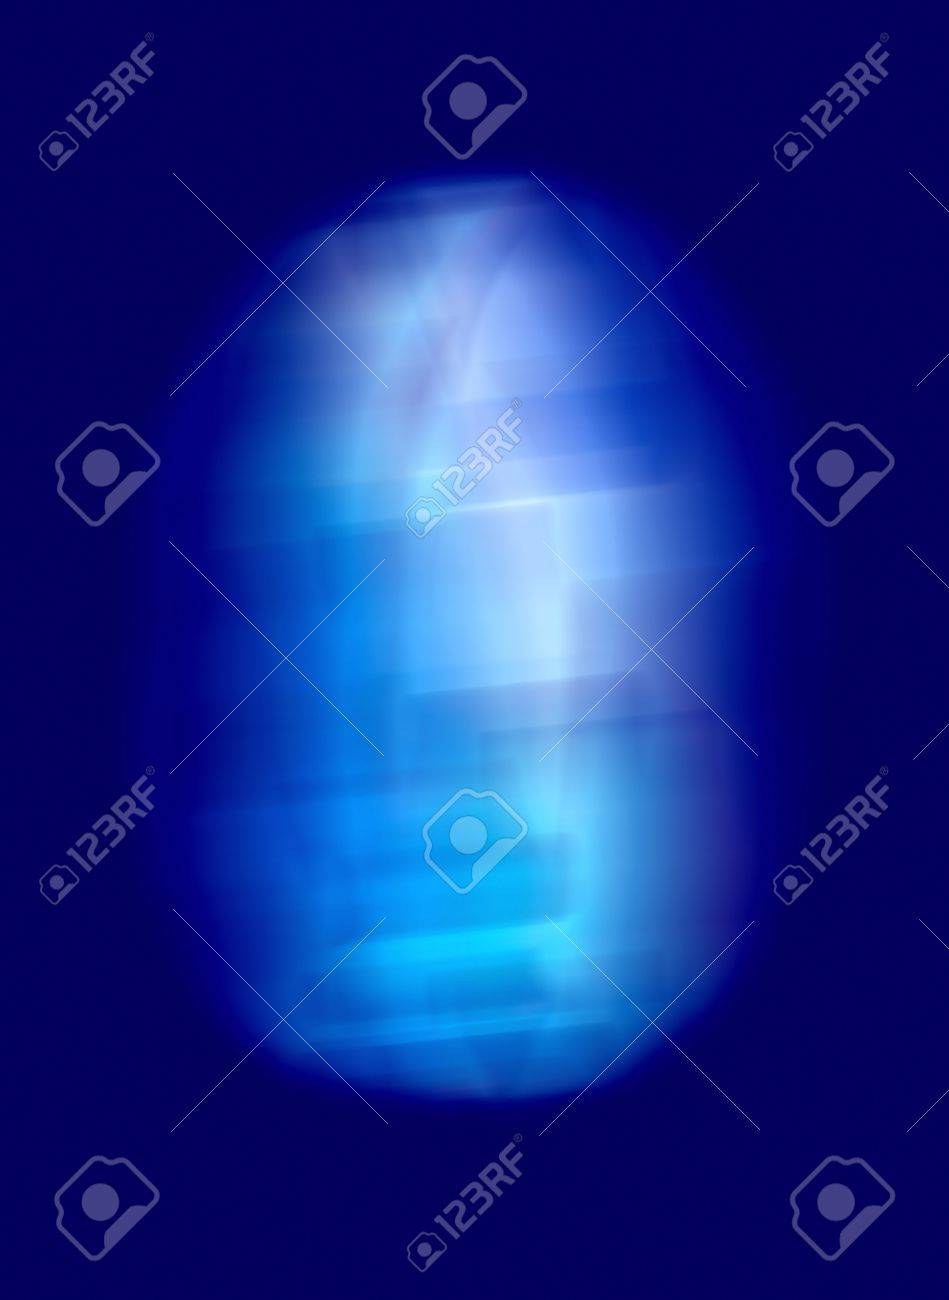 abstract element- energy  digital images Stock Photo - 17330583